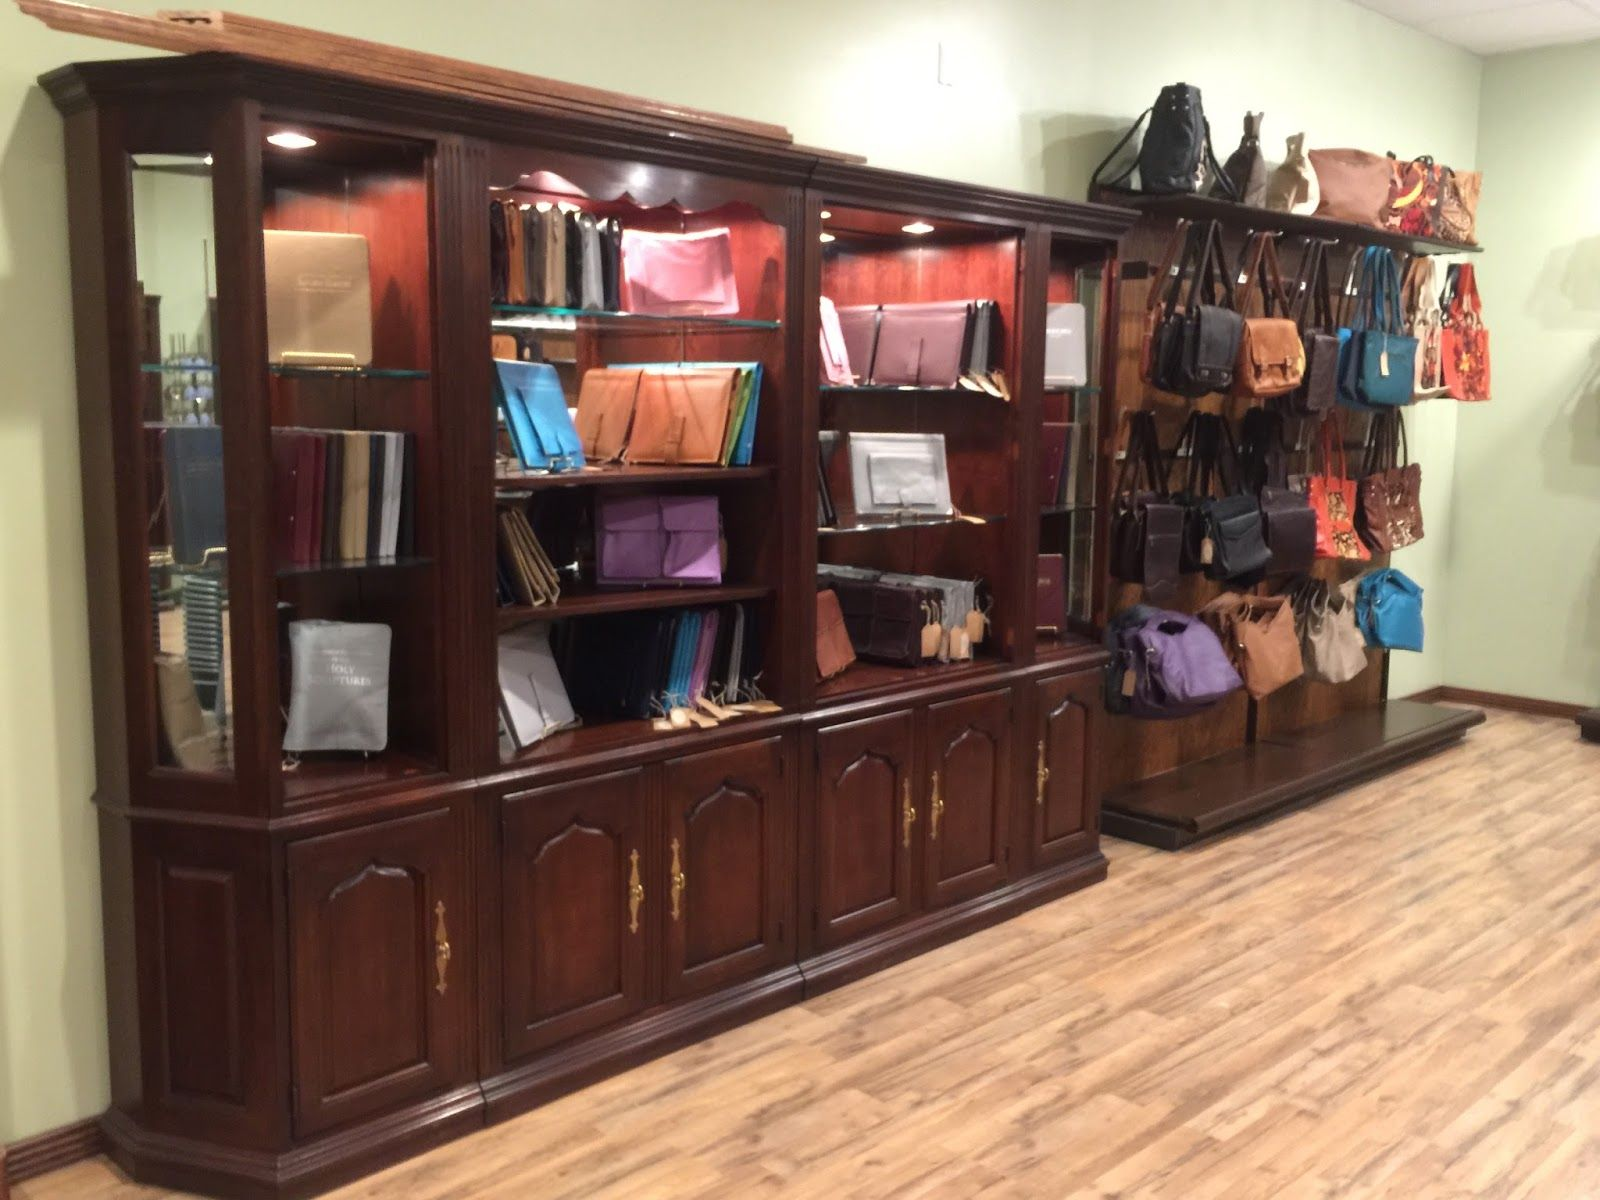 GRAND OPENING!: The 1st Ministry Ideaz Retail Outlet